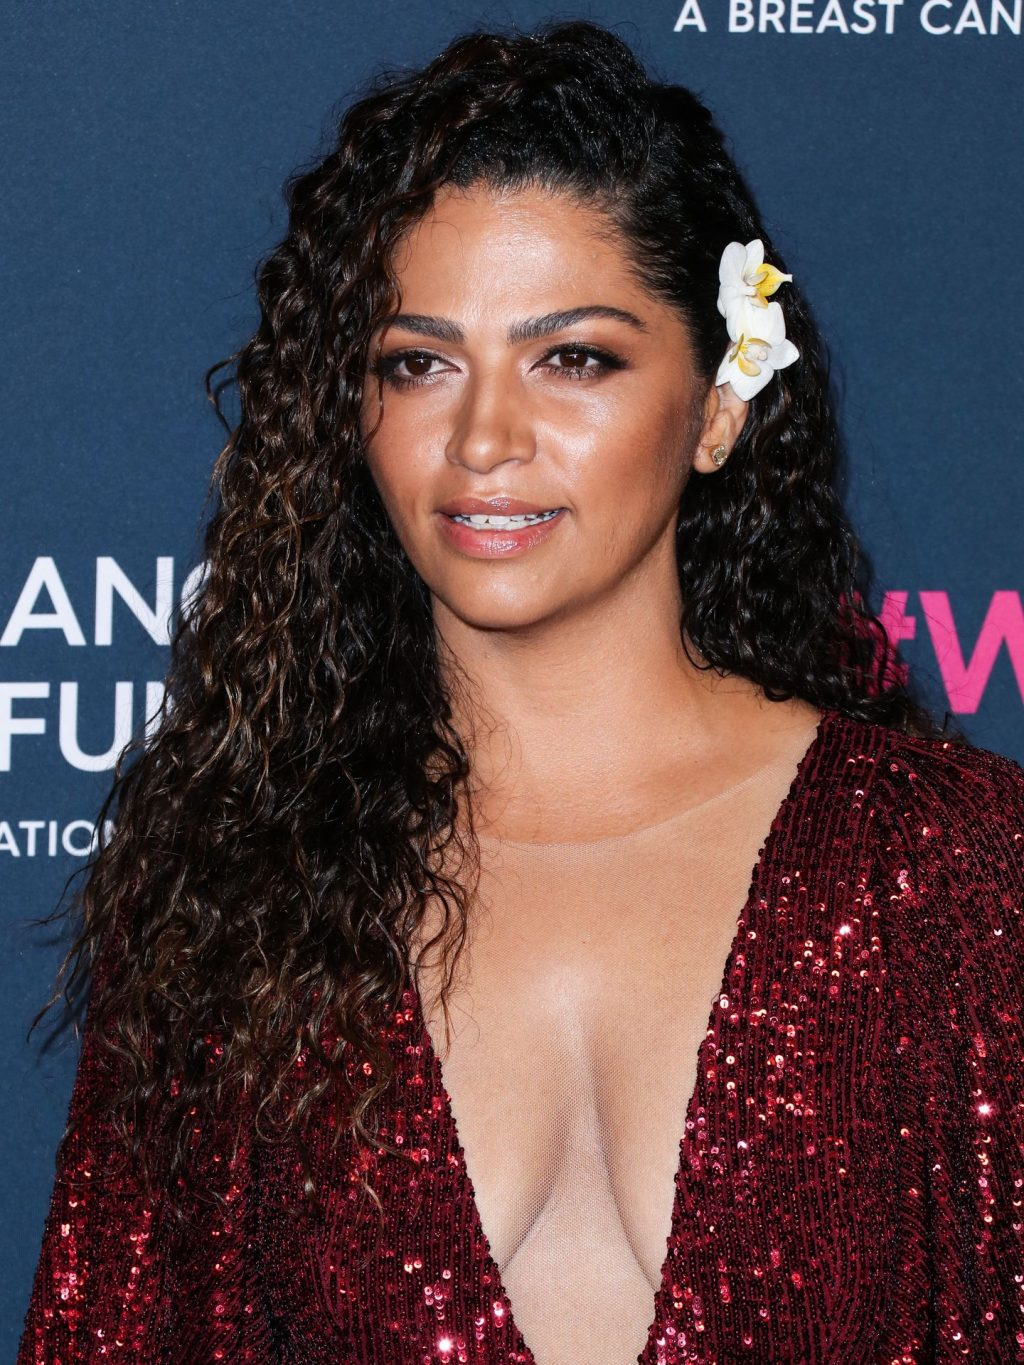 Camila Alves McConaughey Shows Off Her Cleavage at The Event in Beverly Hills (39 Photos)